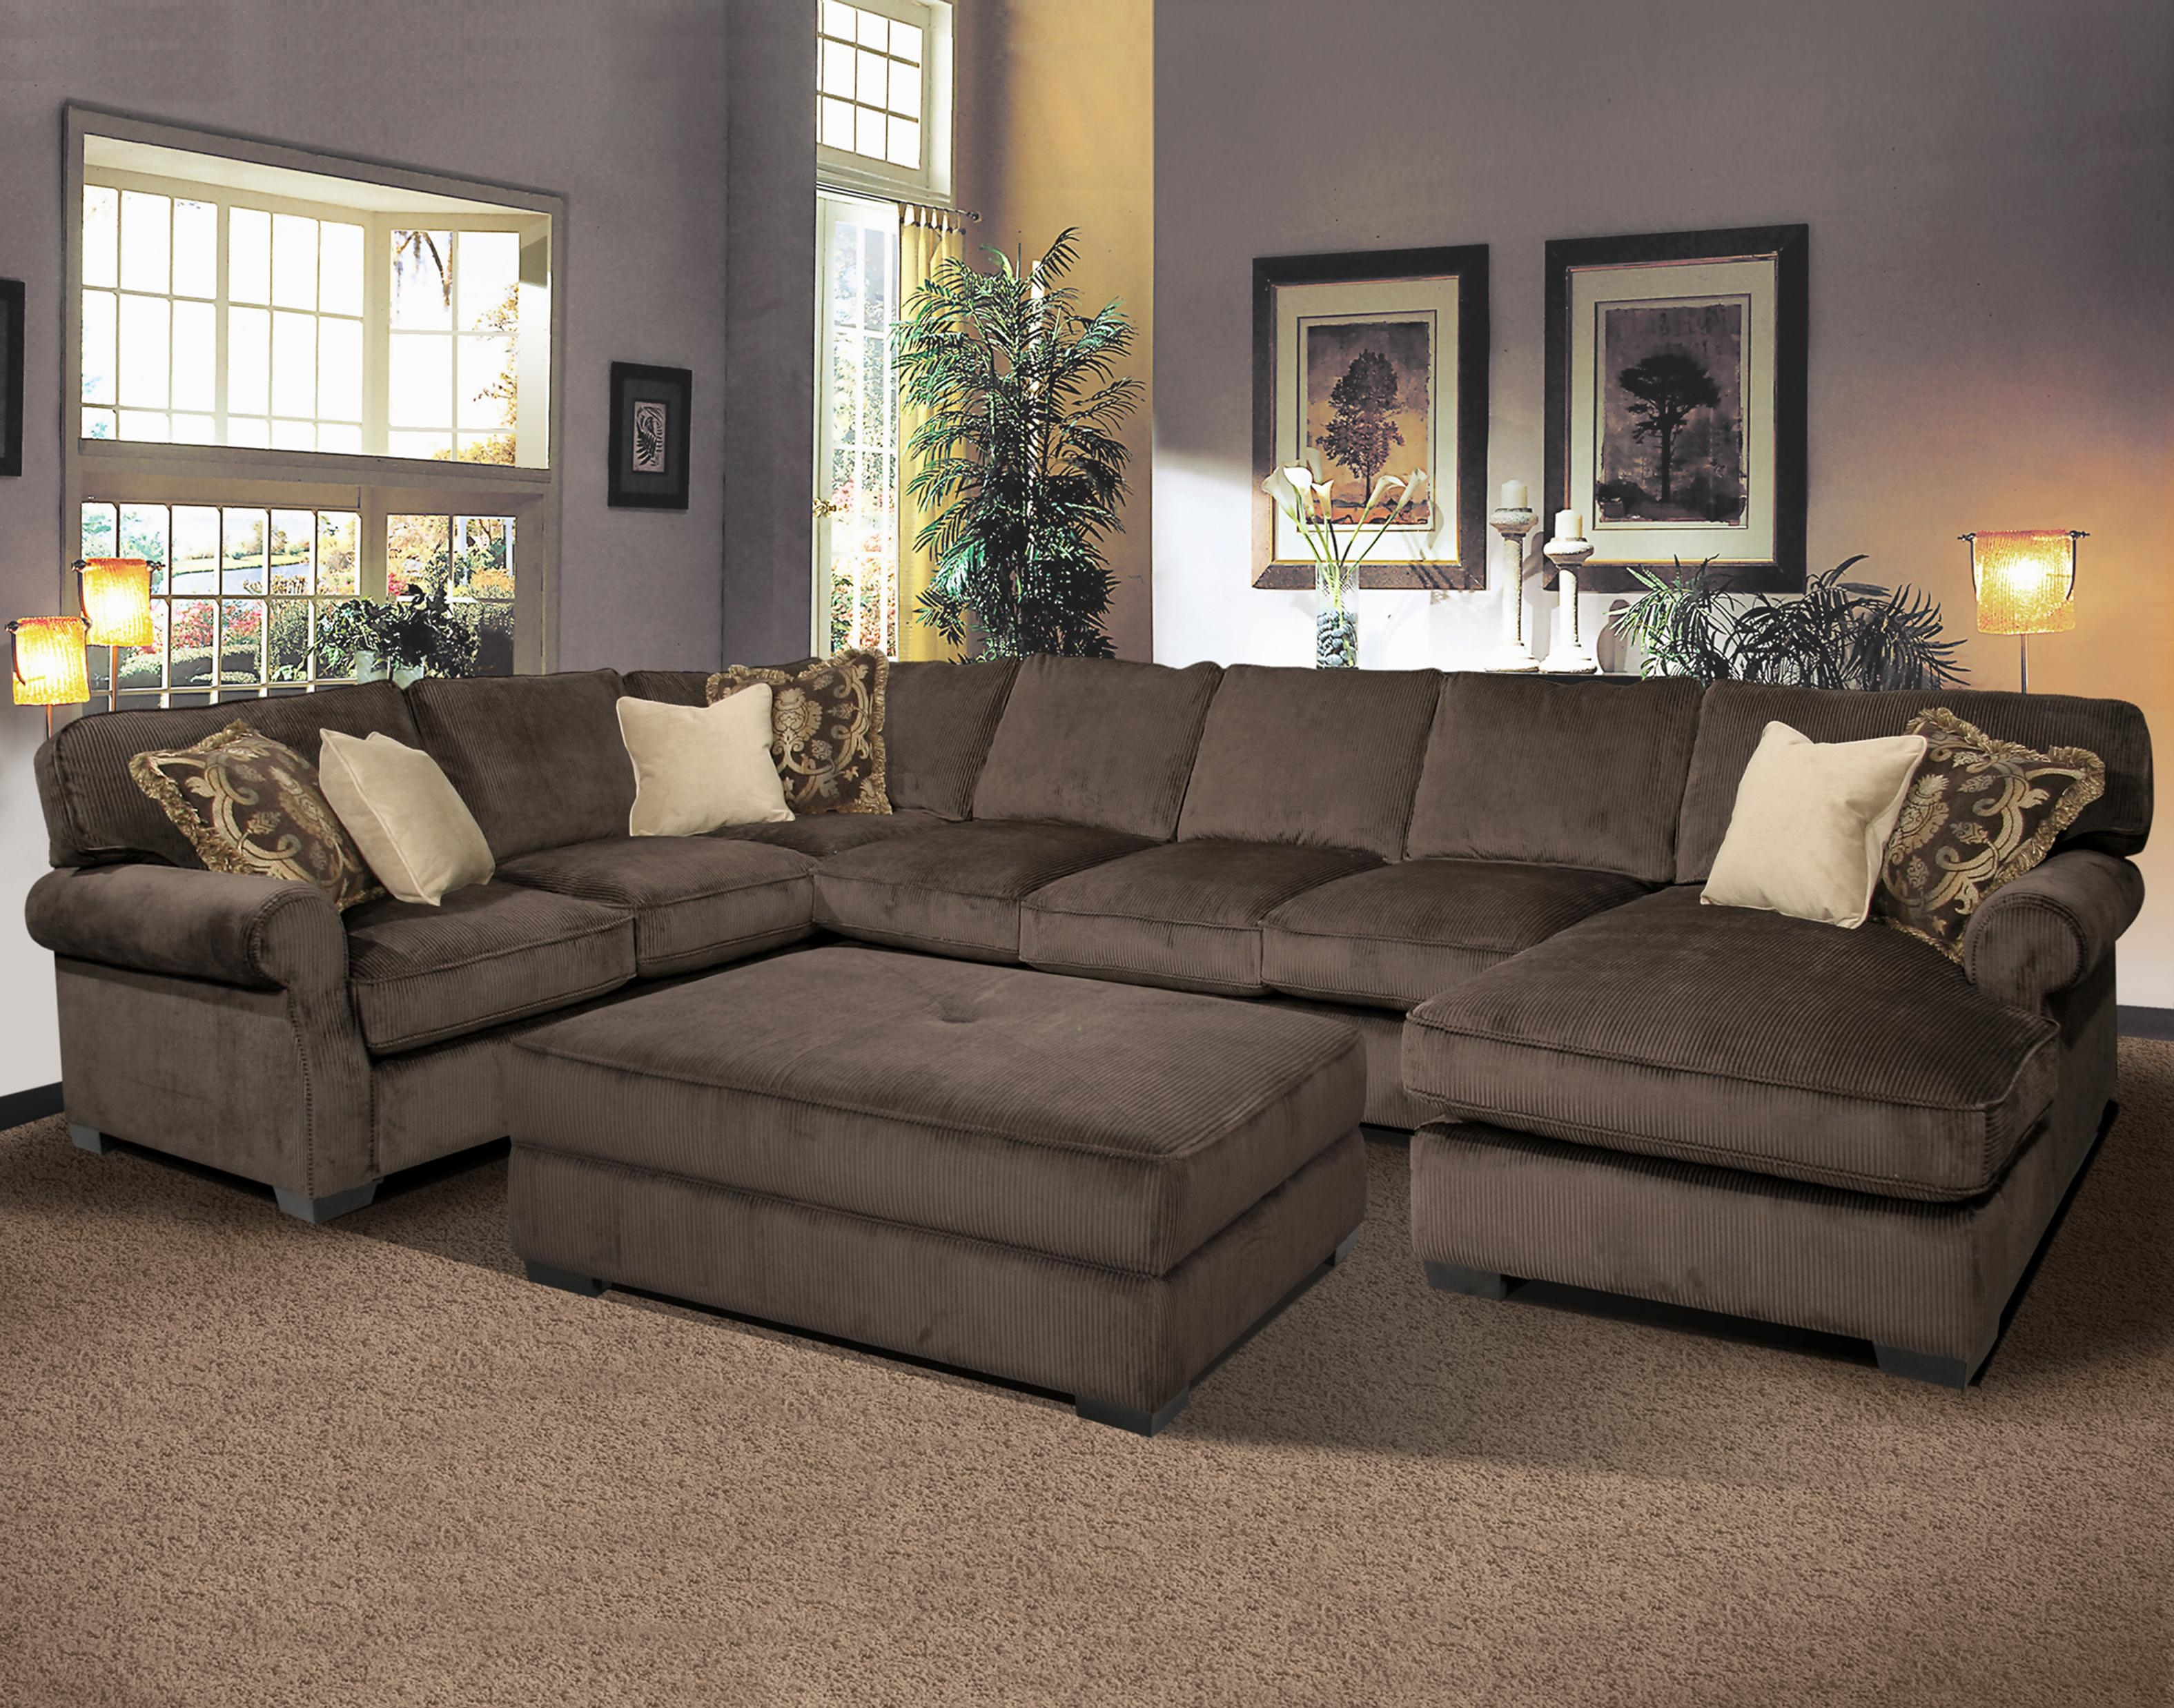 Best 25 Comfy Sectional Ideas On Pinterest In Comfy Sectional Sofa (Image 2 of 15)